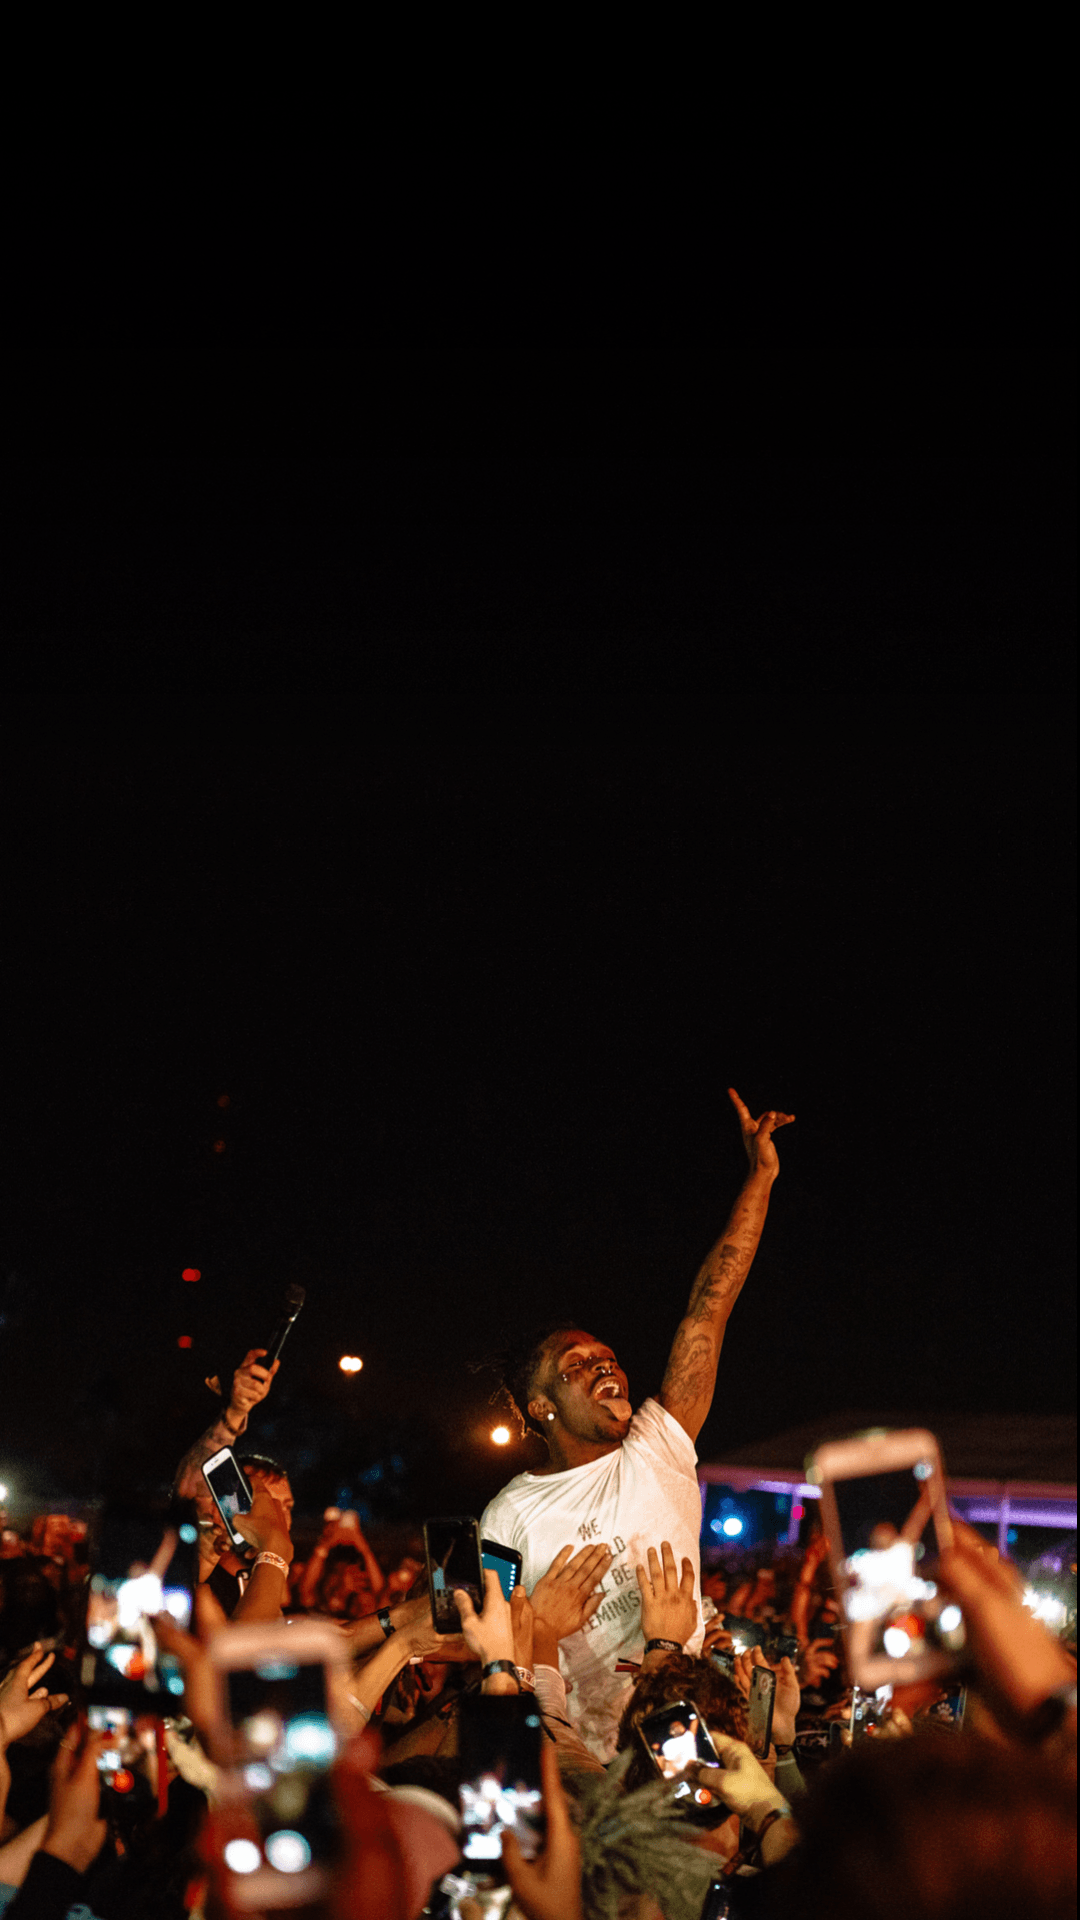 Lil Uzi Phone Wallpapers Top Free Lil Uzi Phone Backgrounds Wallpaperaccess Tons of awesome lil uzi vert wallpapers to download for free. lil uzi phone wallpapers top free lil